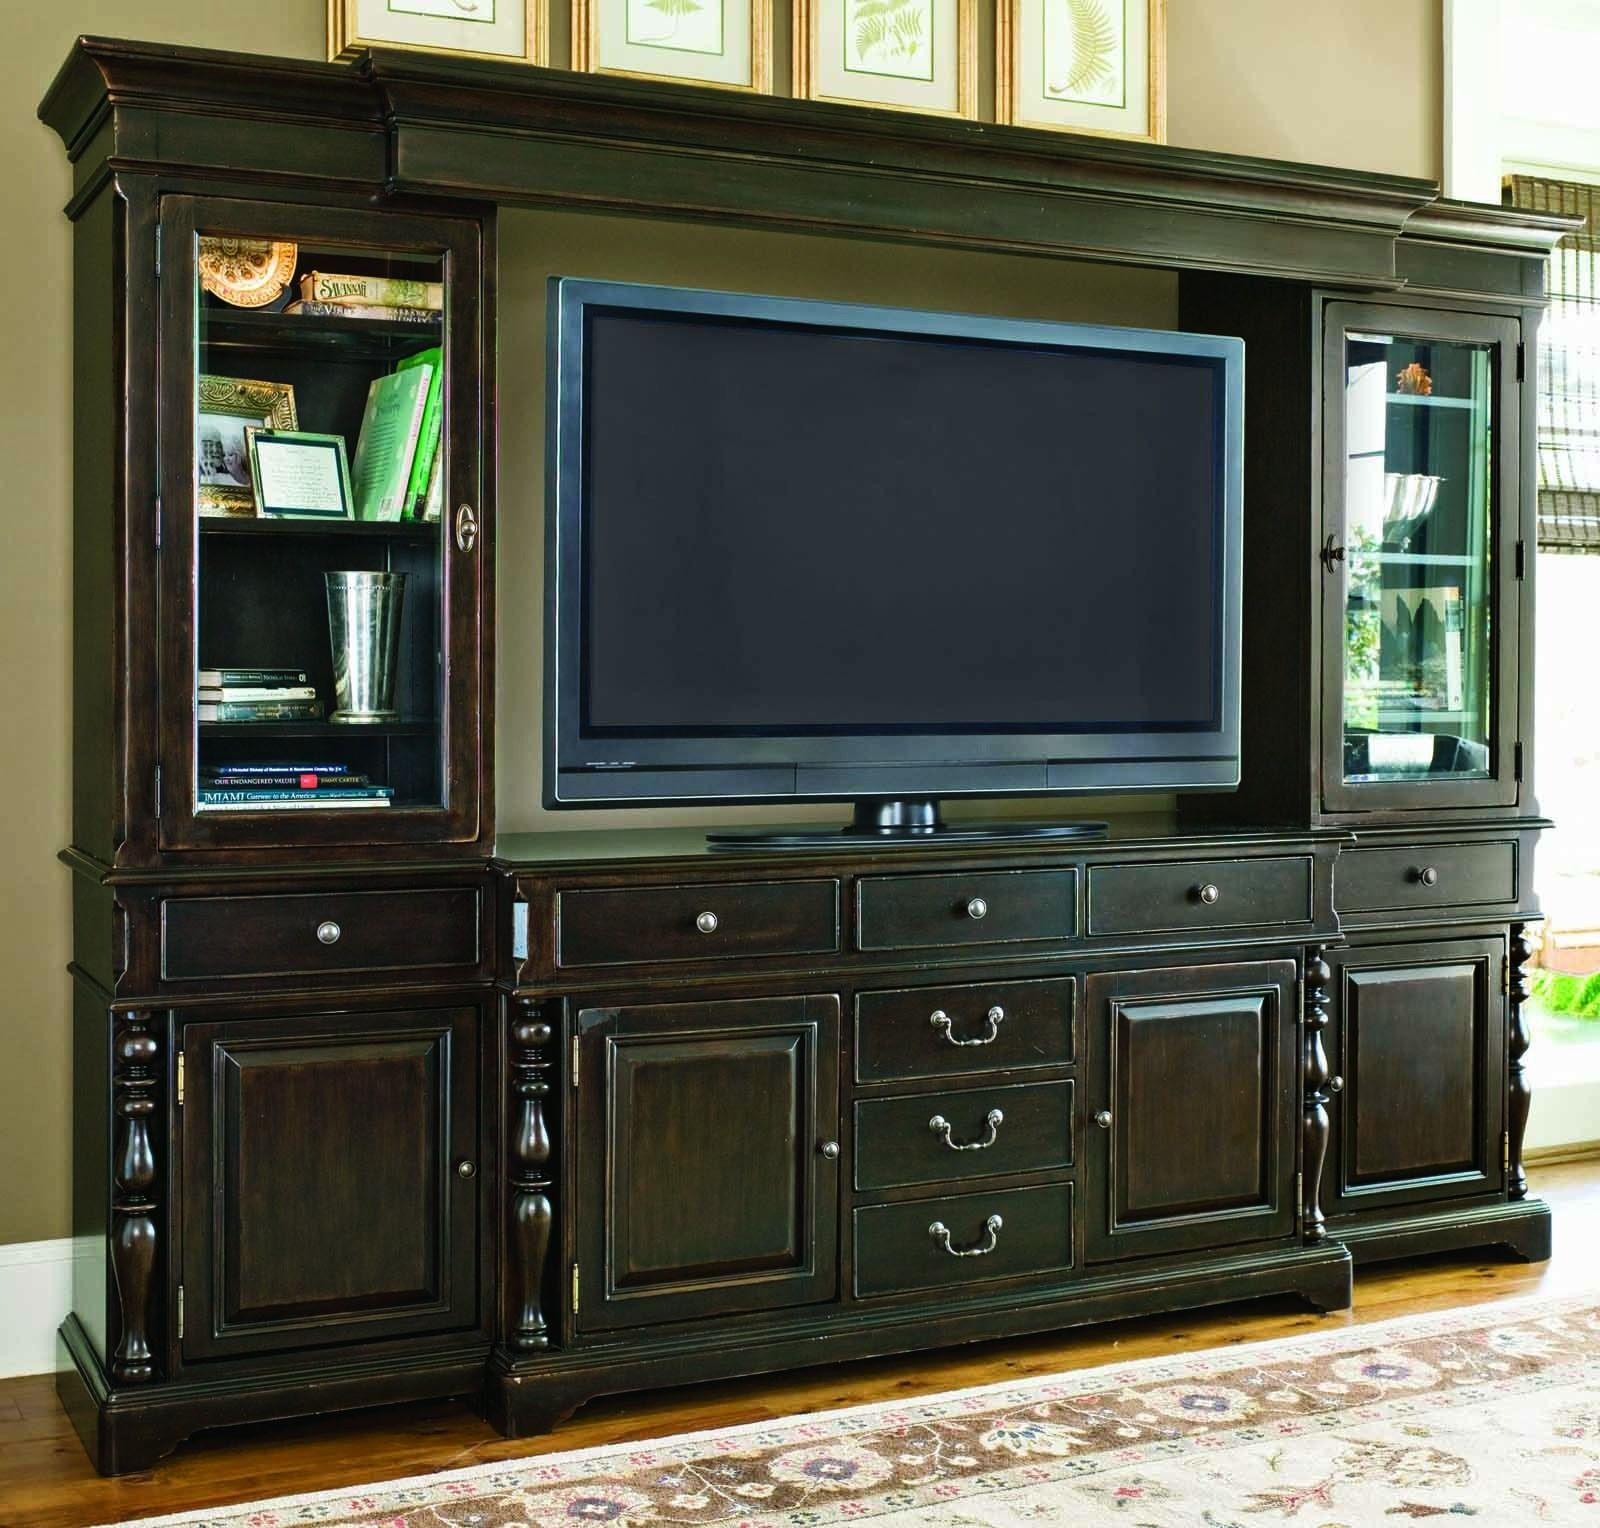 Awesome Paula Deen Entertainment Wall Unit Tobacco Finish Is A Part Of Paula Deen  Furniture Collection. Available At Knight Furniture Showrooms In Florence,  SC.